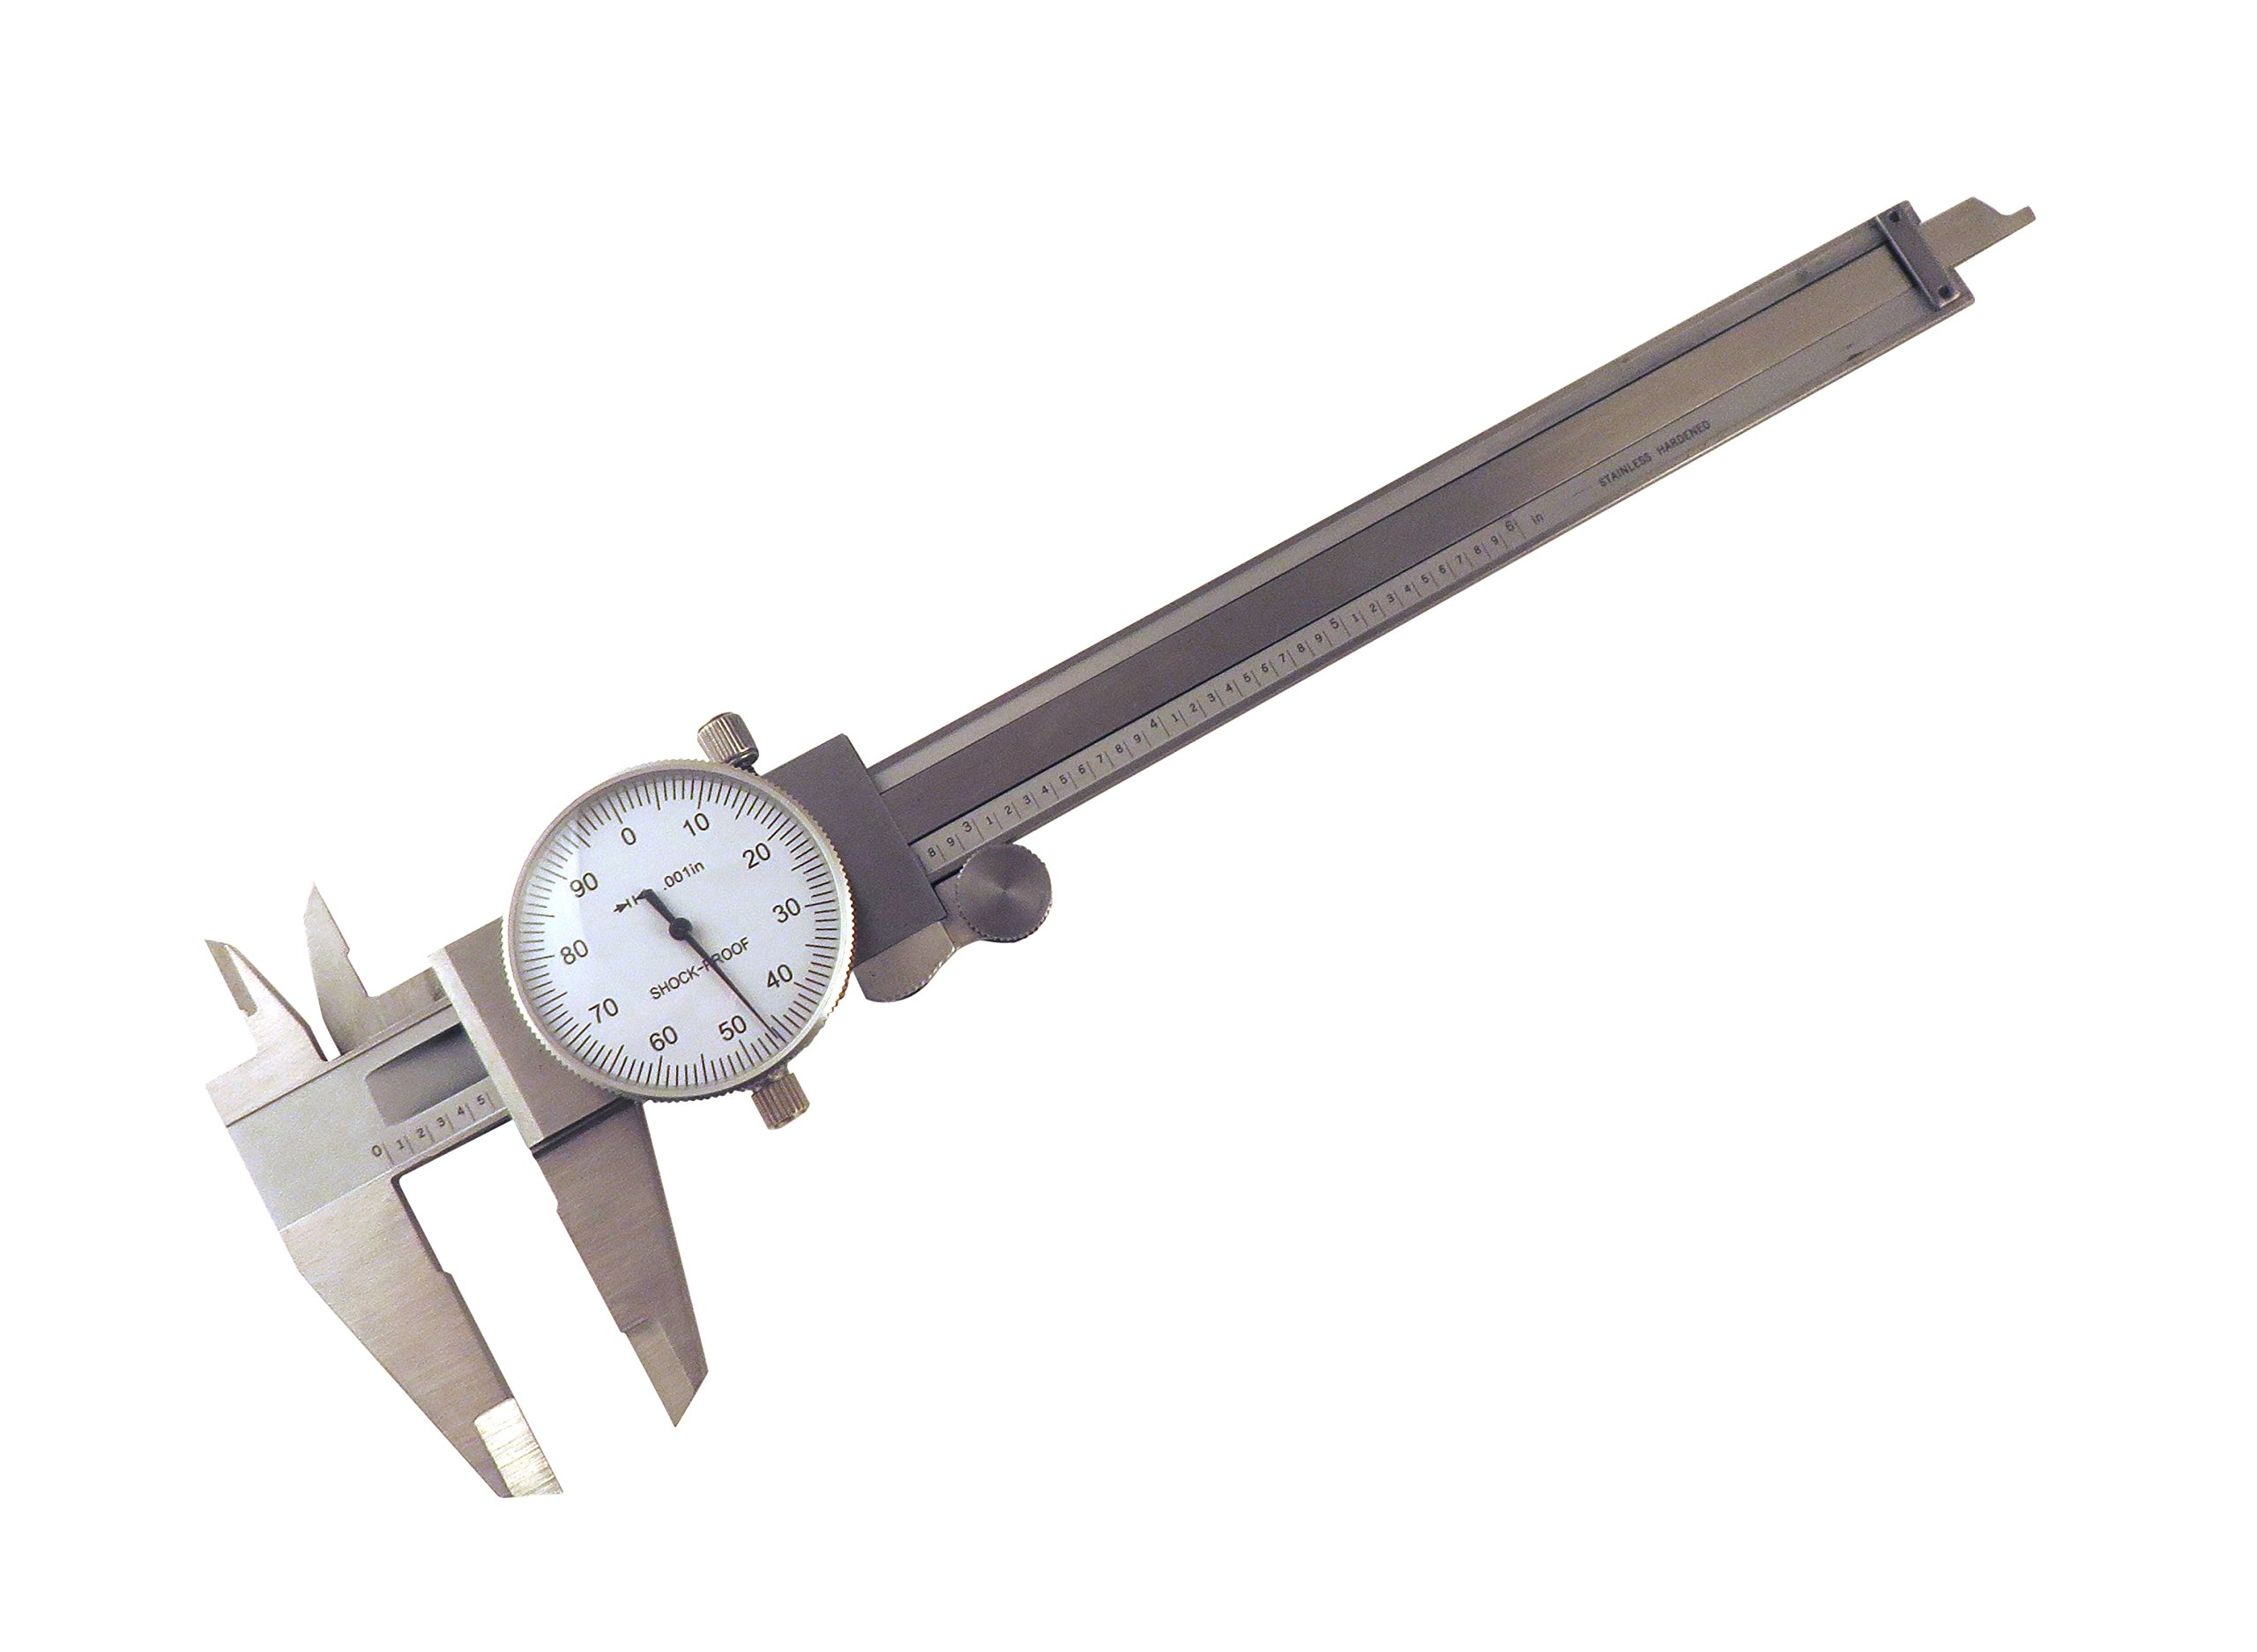 6 '' SAE Dial Calipers Accurate to 0.001'' per 6'' Hardened Stainless Steel for Inside, Outside, Step and Depth Measurements SAEDC-6